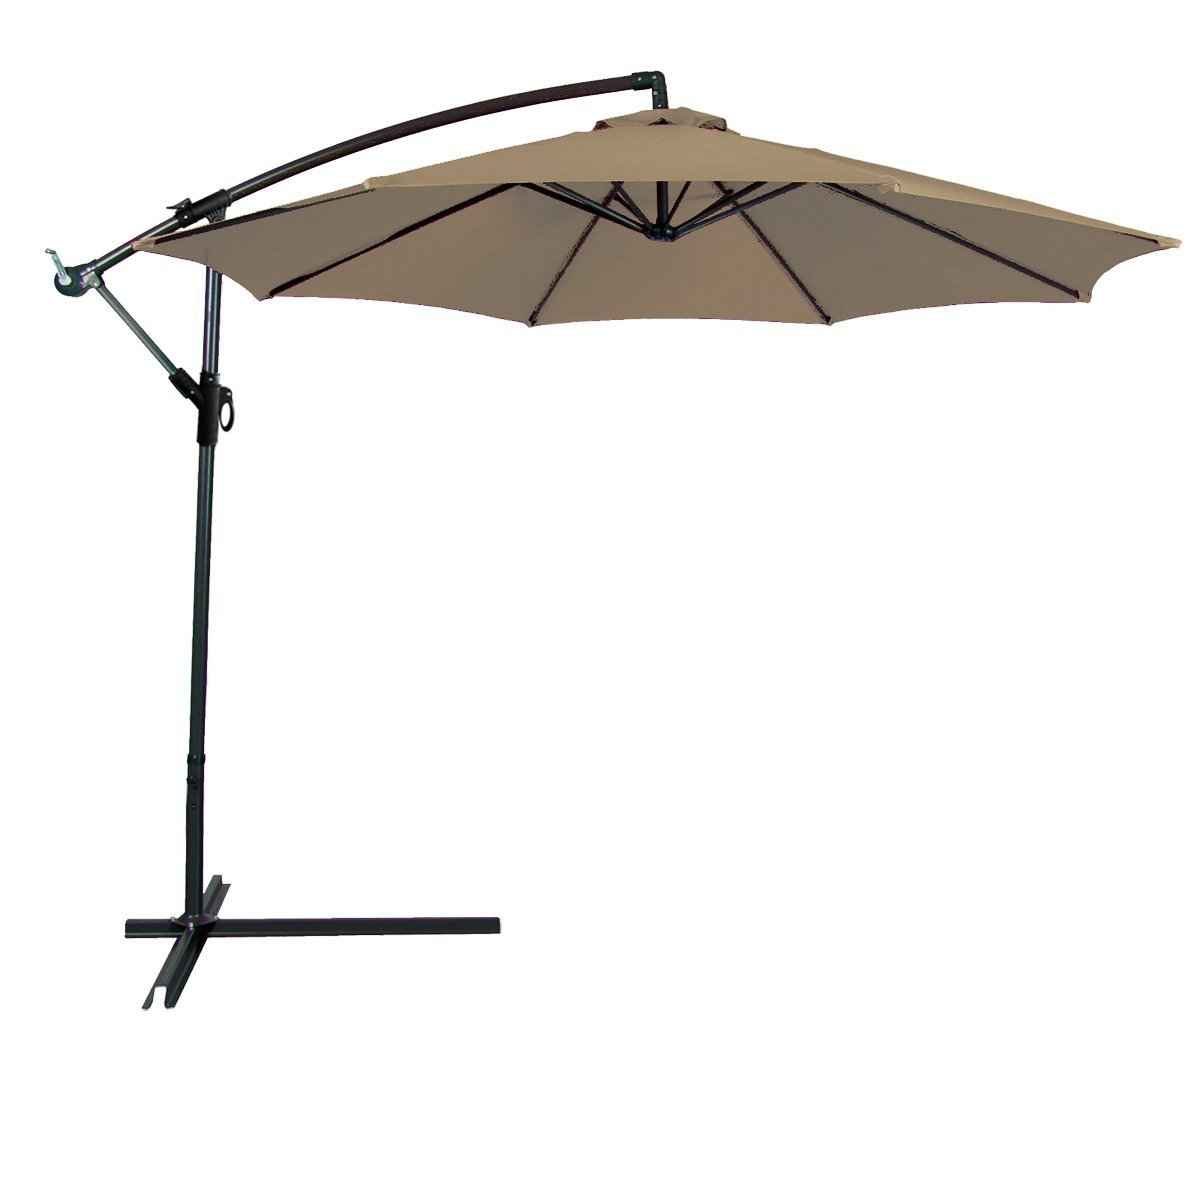 Delightful Making To Our Top 10 Best Offset Patio Umbrellas In 2017 Reviews List Is  Patio Watcher Offset Umbrella. This Patio Umbrella Has A Very Adaptive  Design.